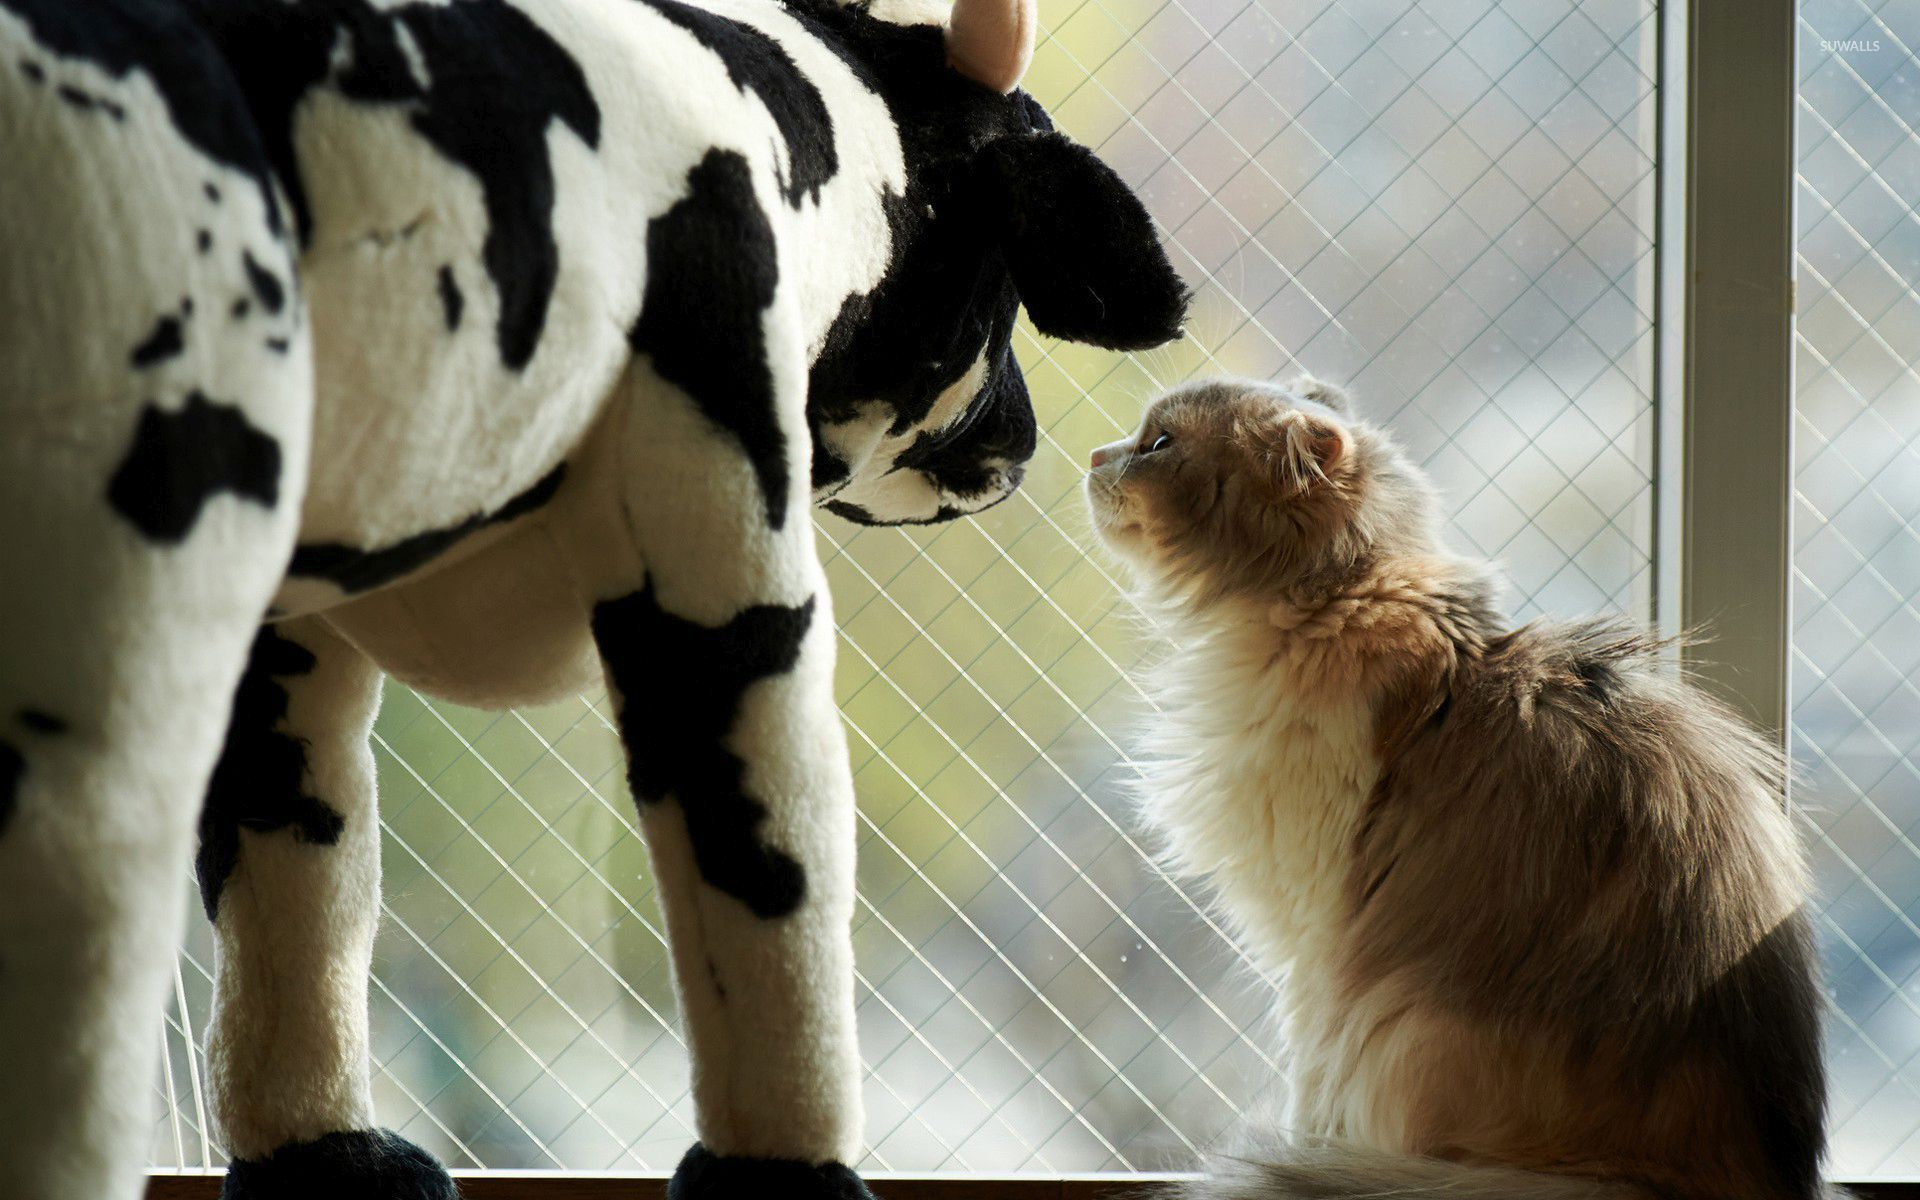 Cat Gazing At A Toy Cow 46585 1920×1200 Wallpaper